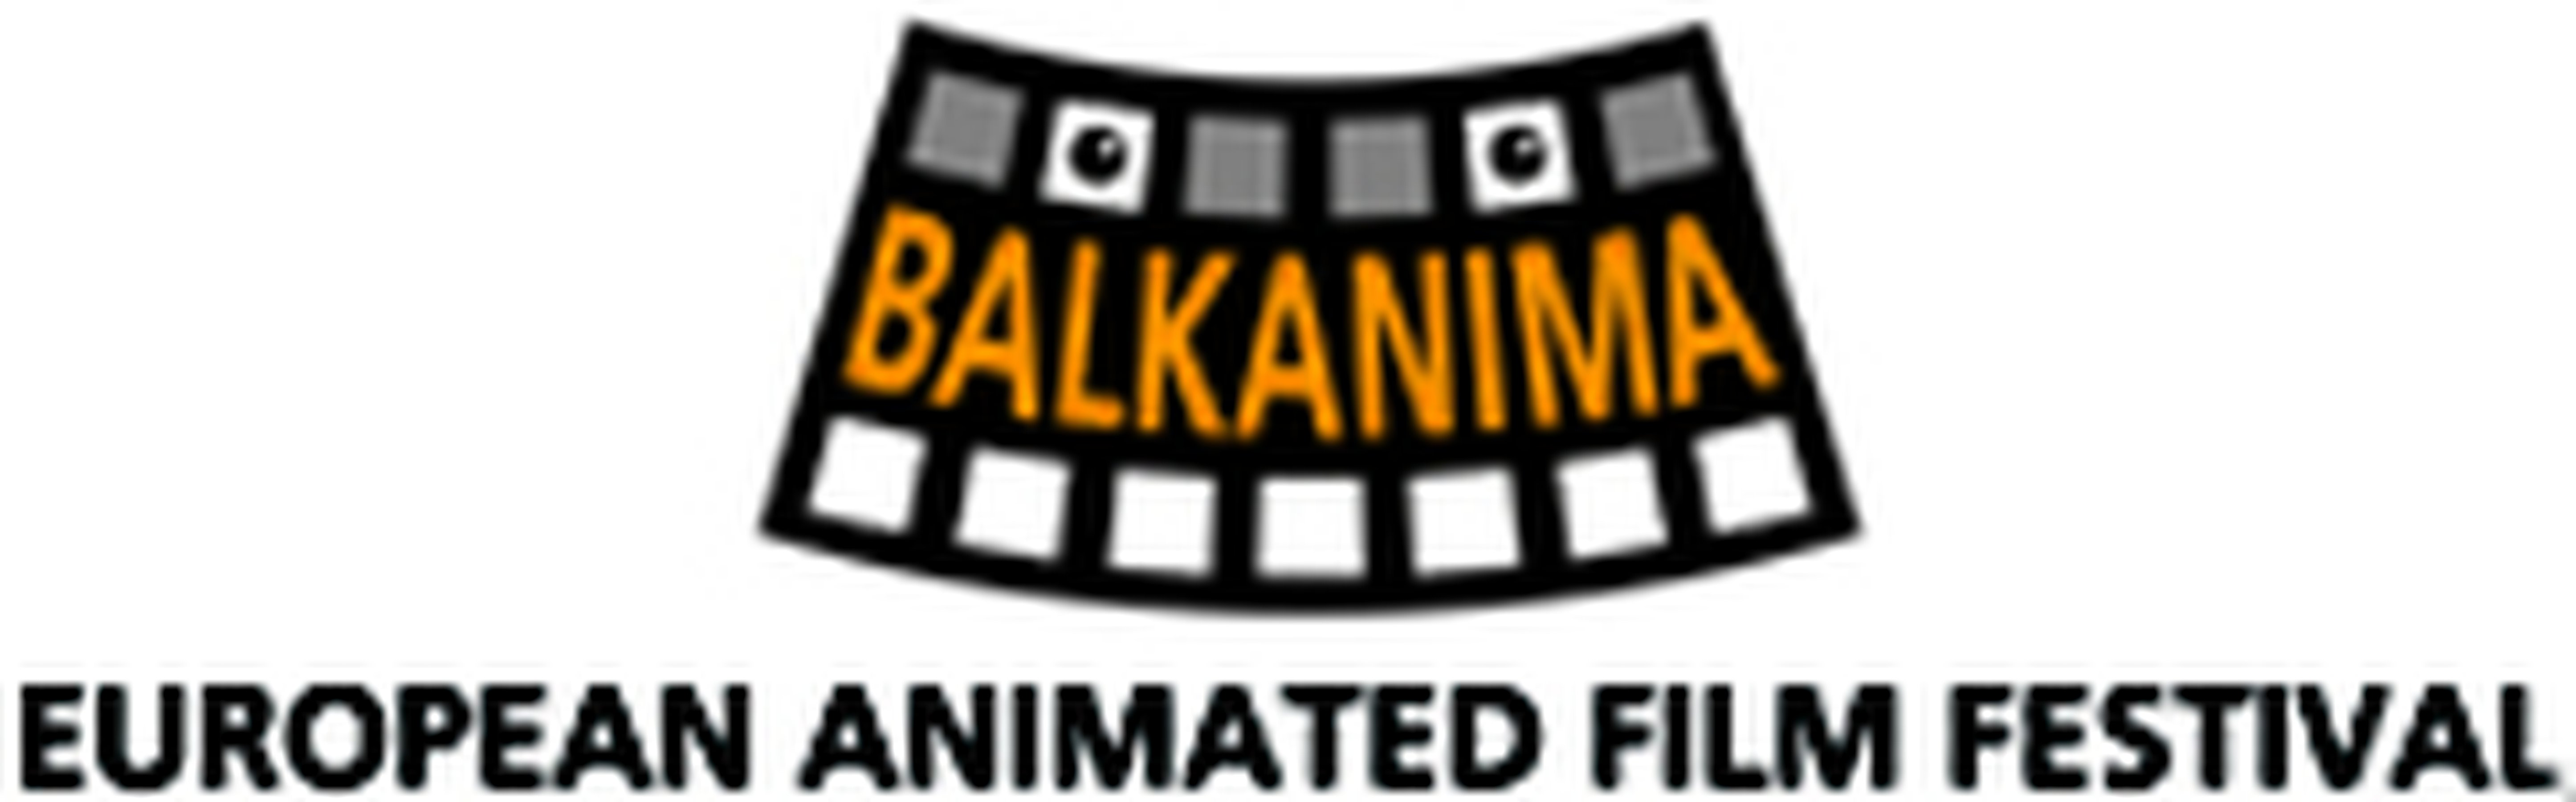 Balkanima European Animated Film Festival